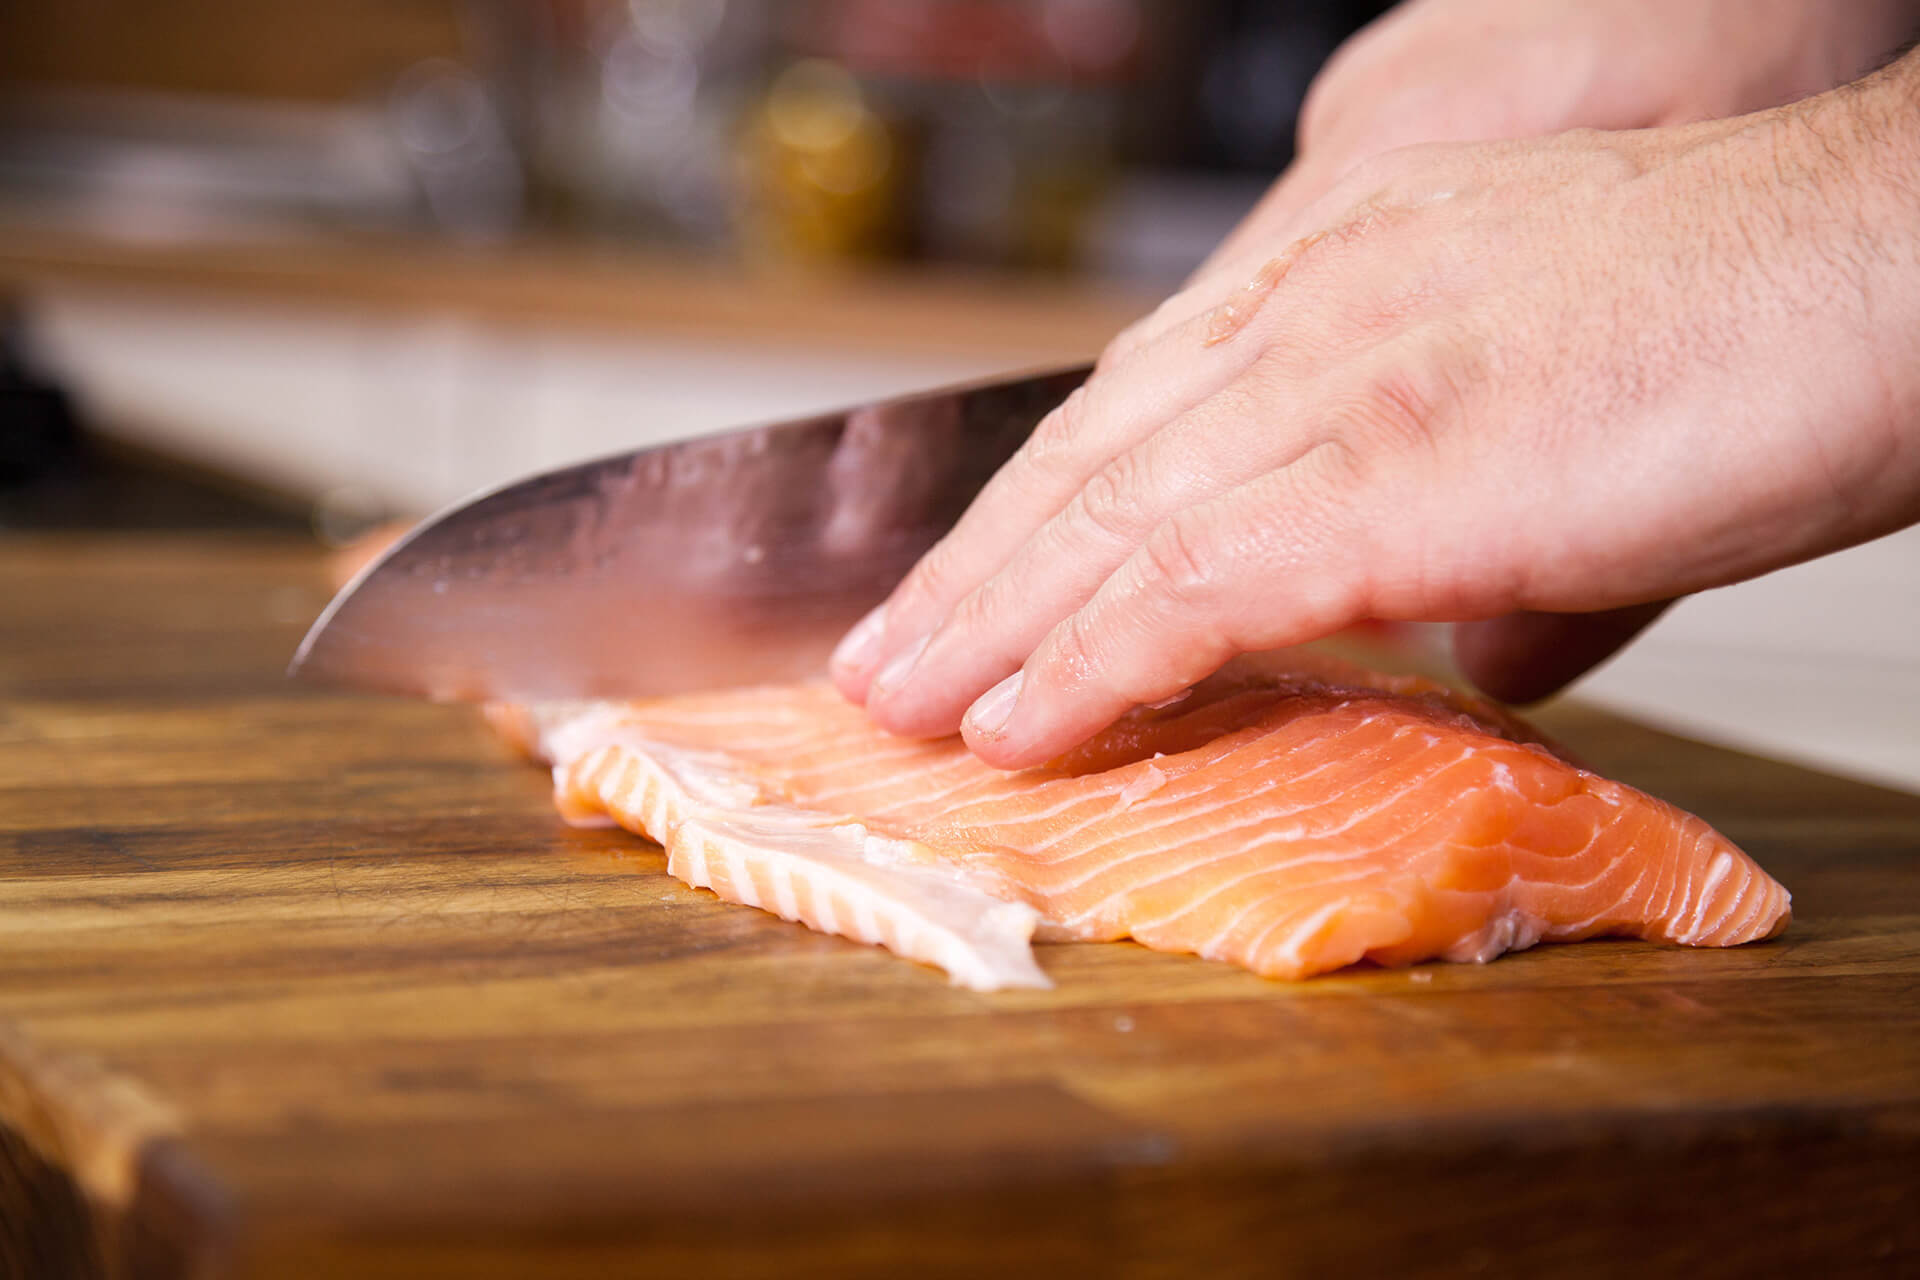 Person cutting a salmon / Personne coupant un saumon